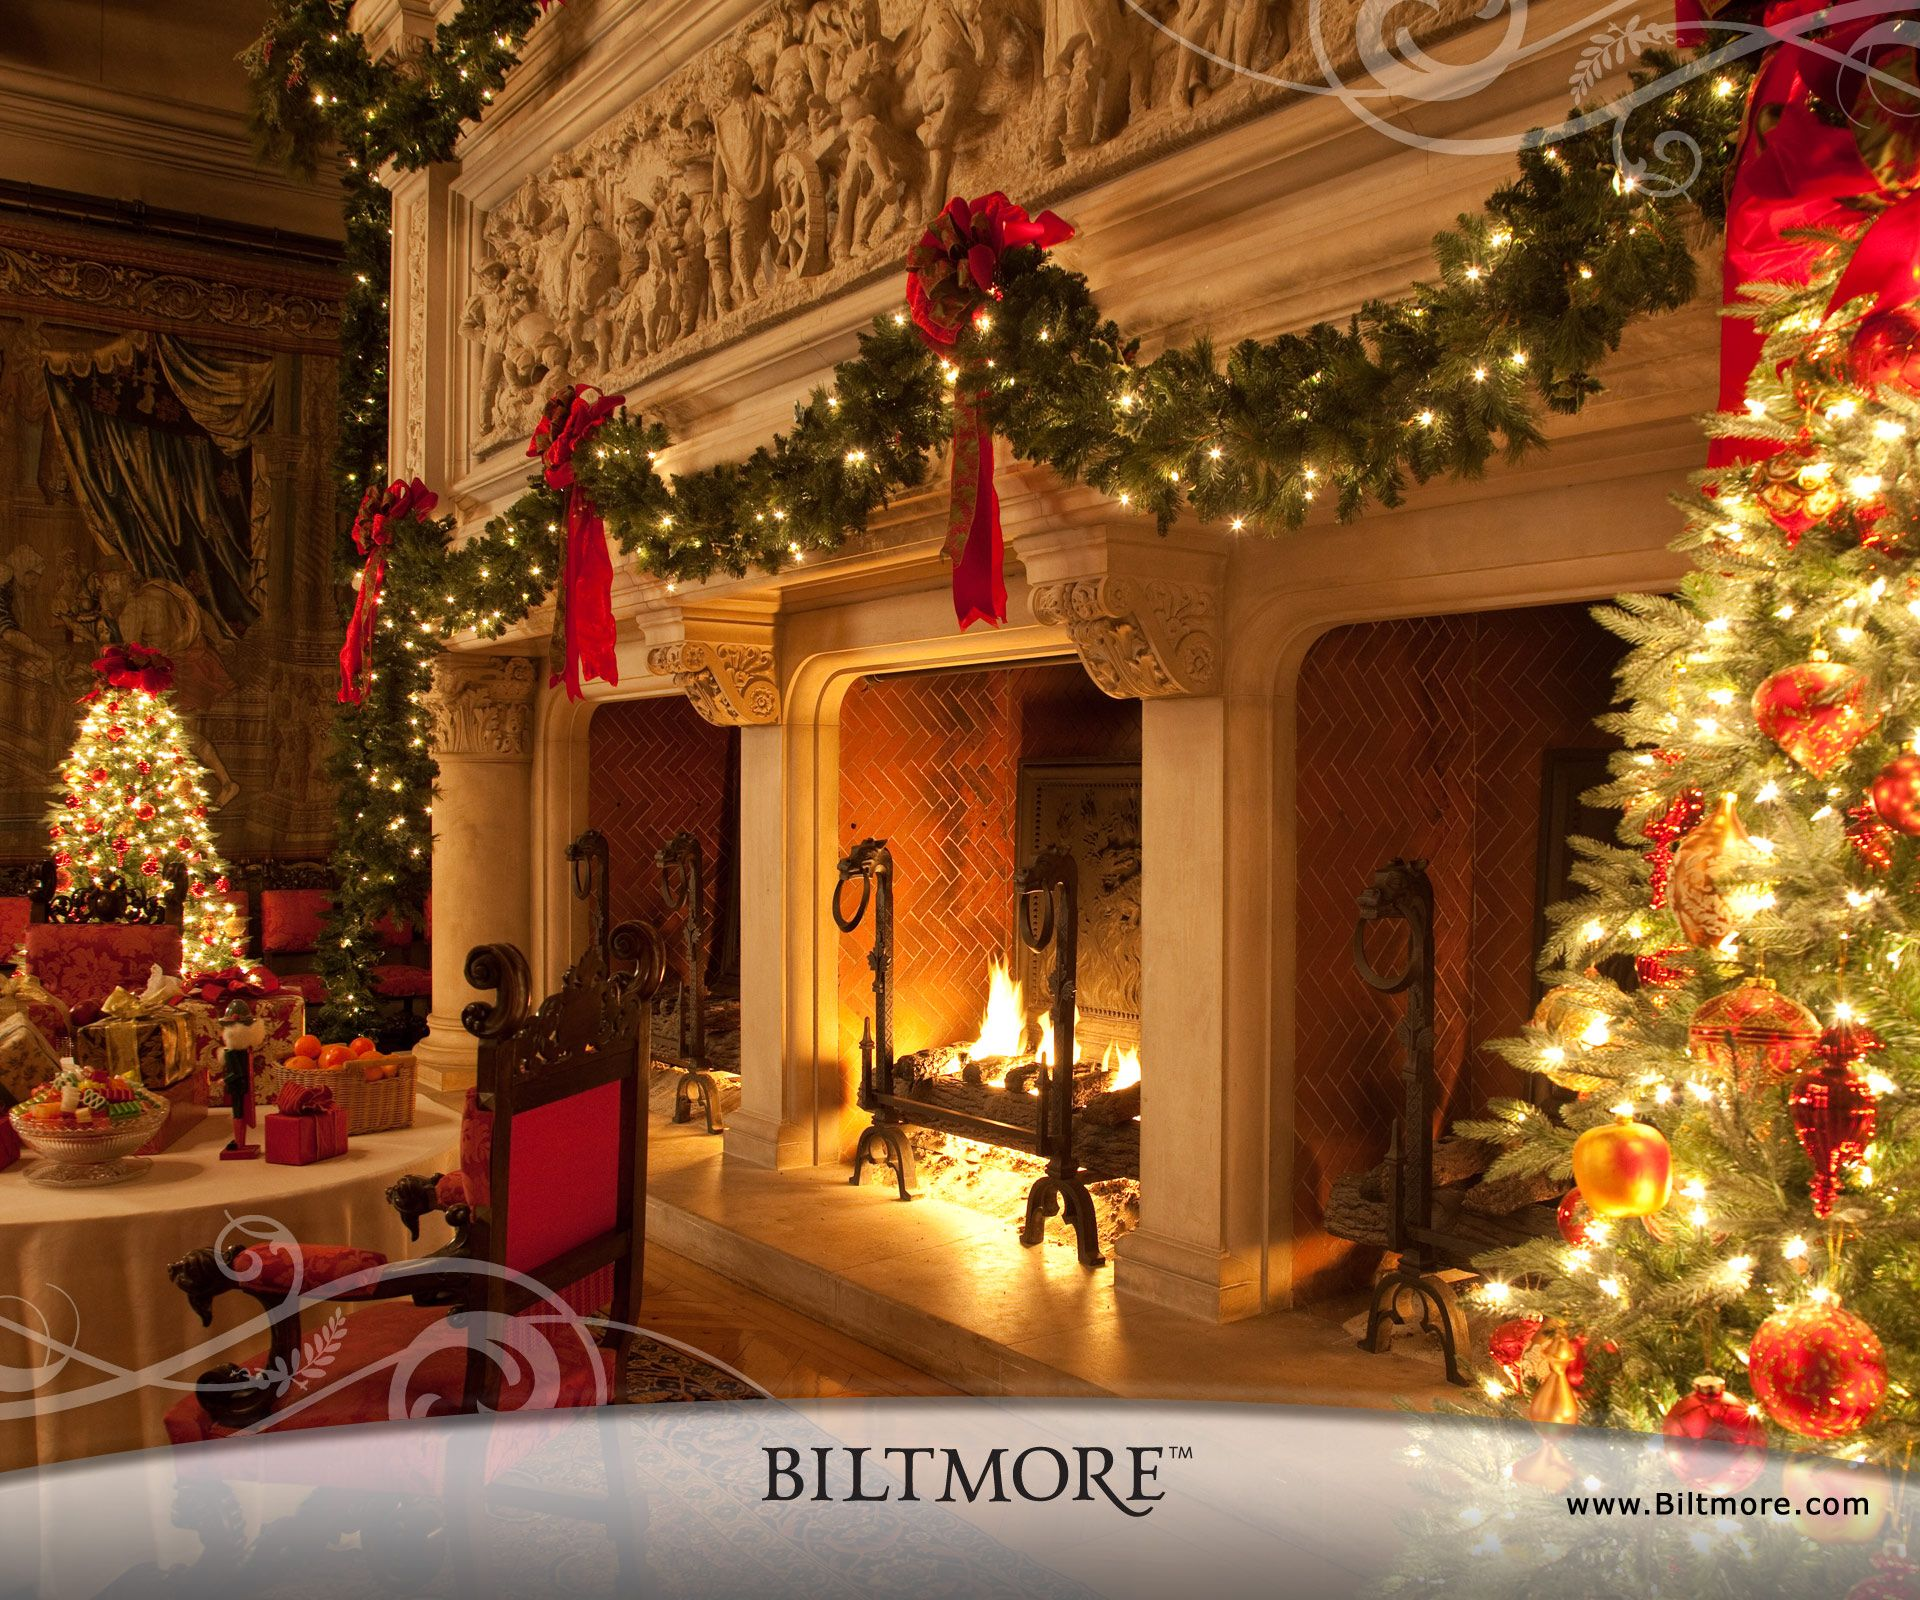 The Biltmore...well Worth The Trip And The Christmas